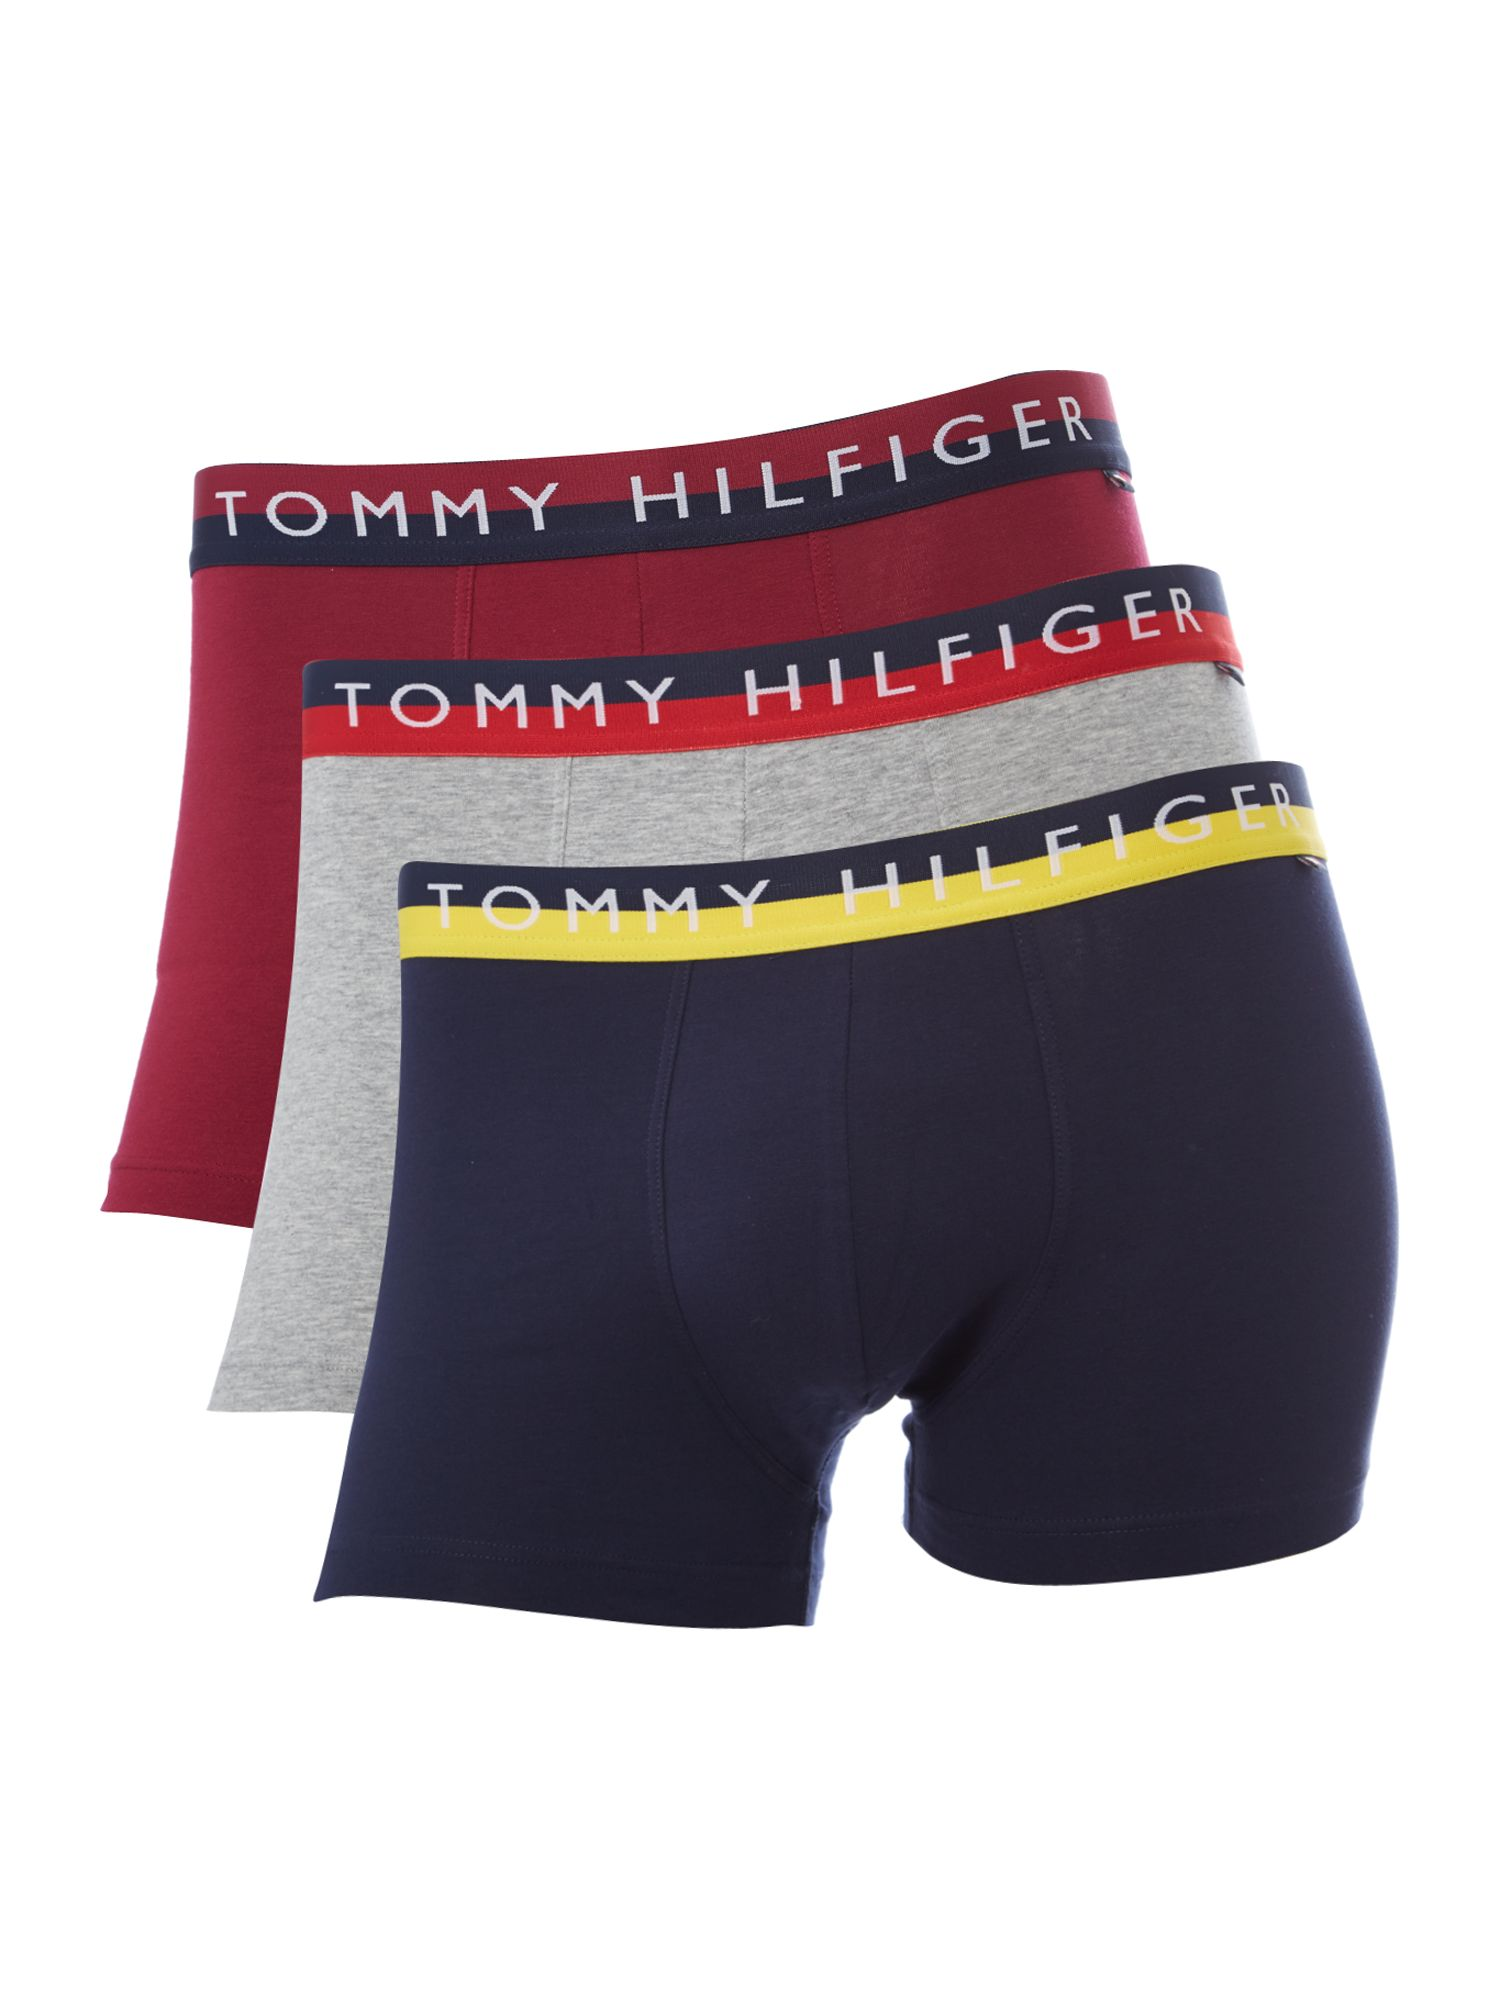 3 pack stripe underwear trunk